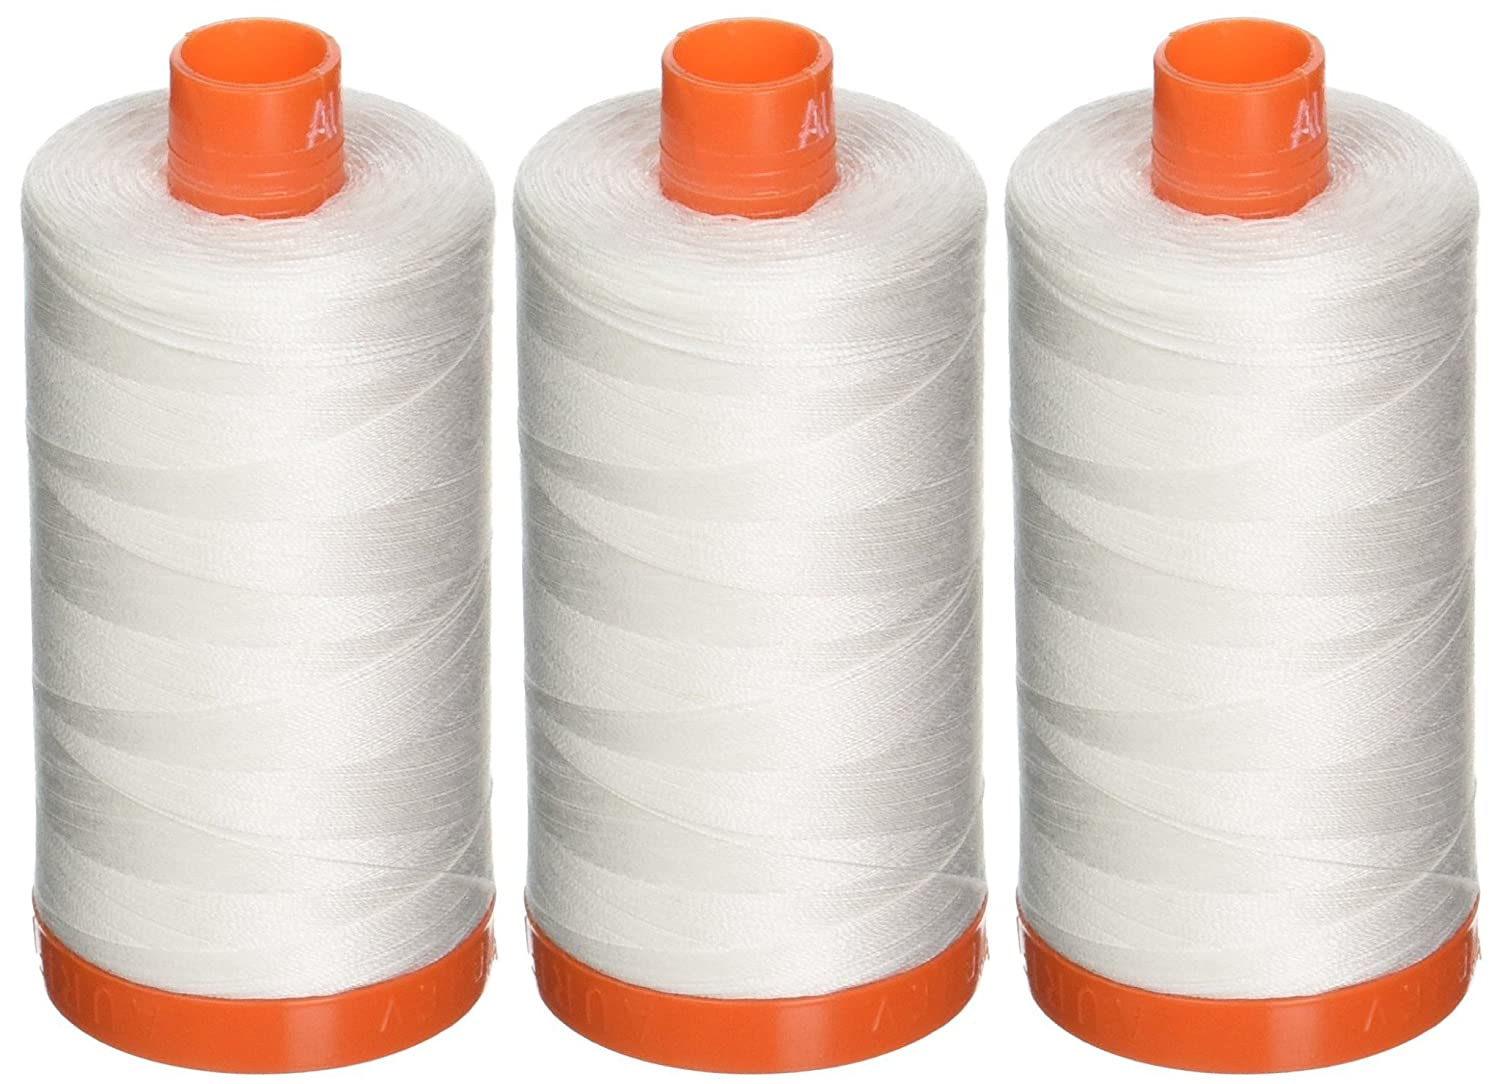 Aurifil Quilting Thread 50wt Natural White, Natural White Notions Marketing NR-6007